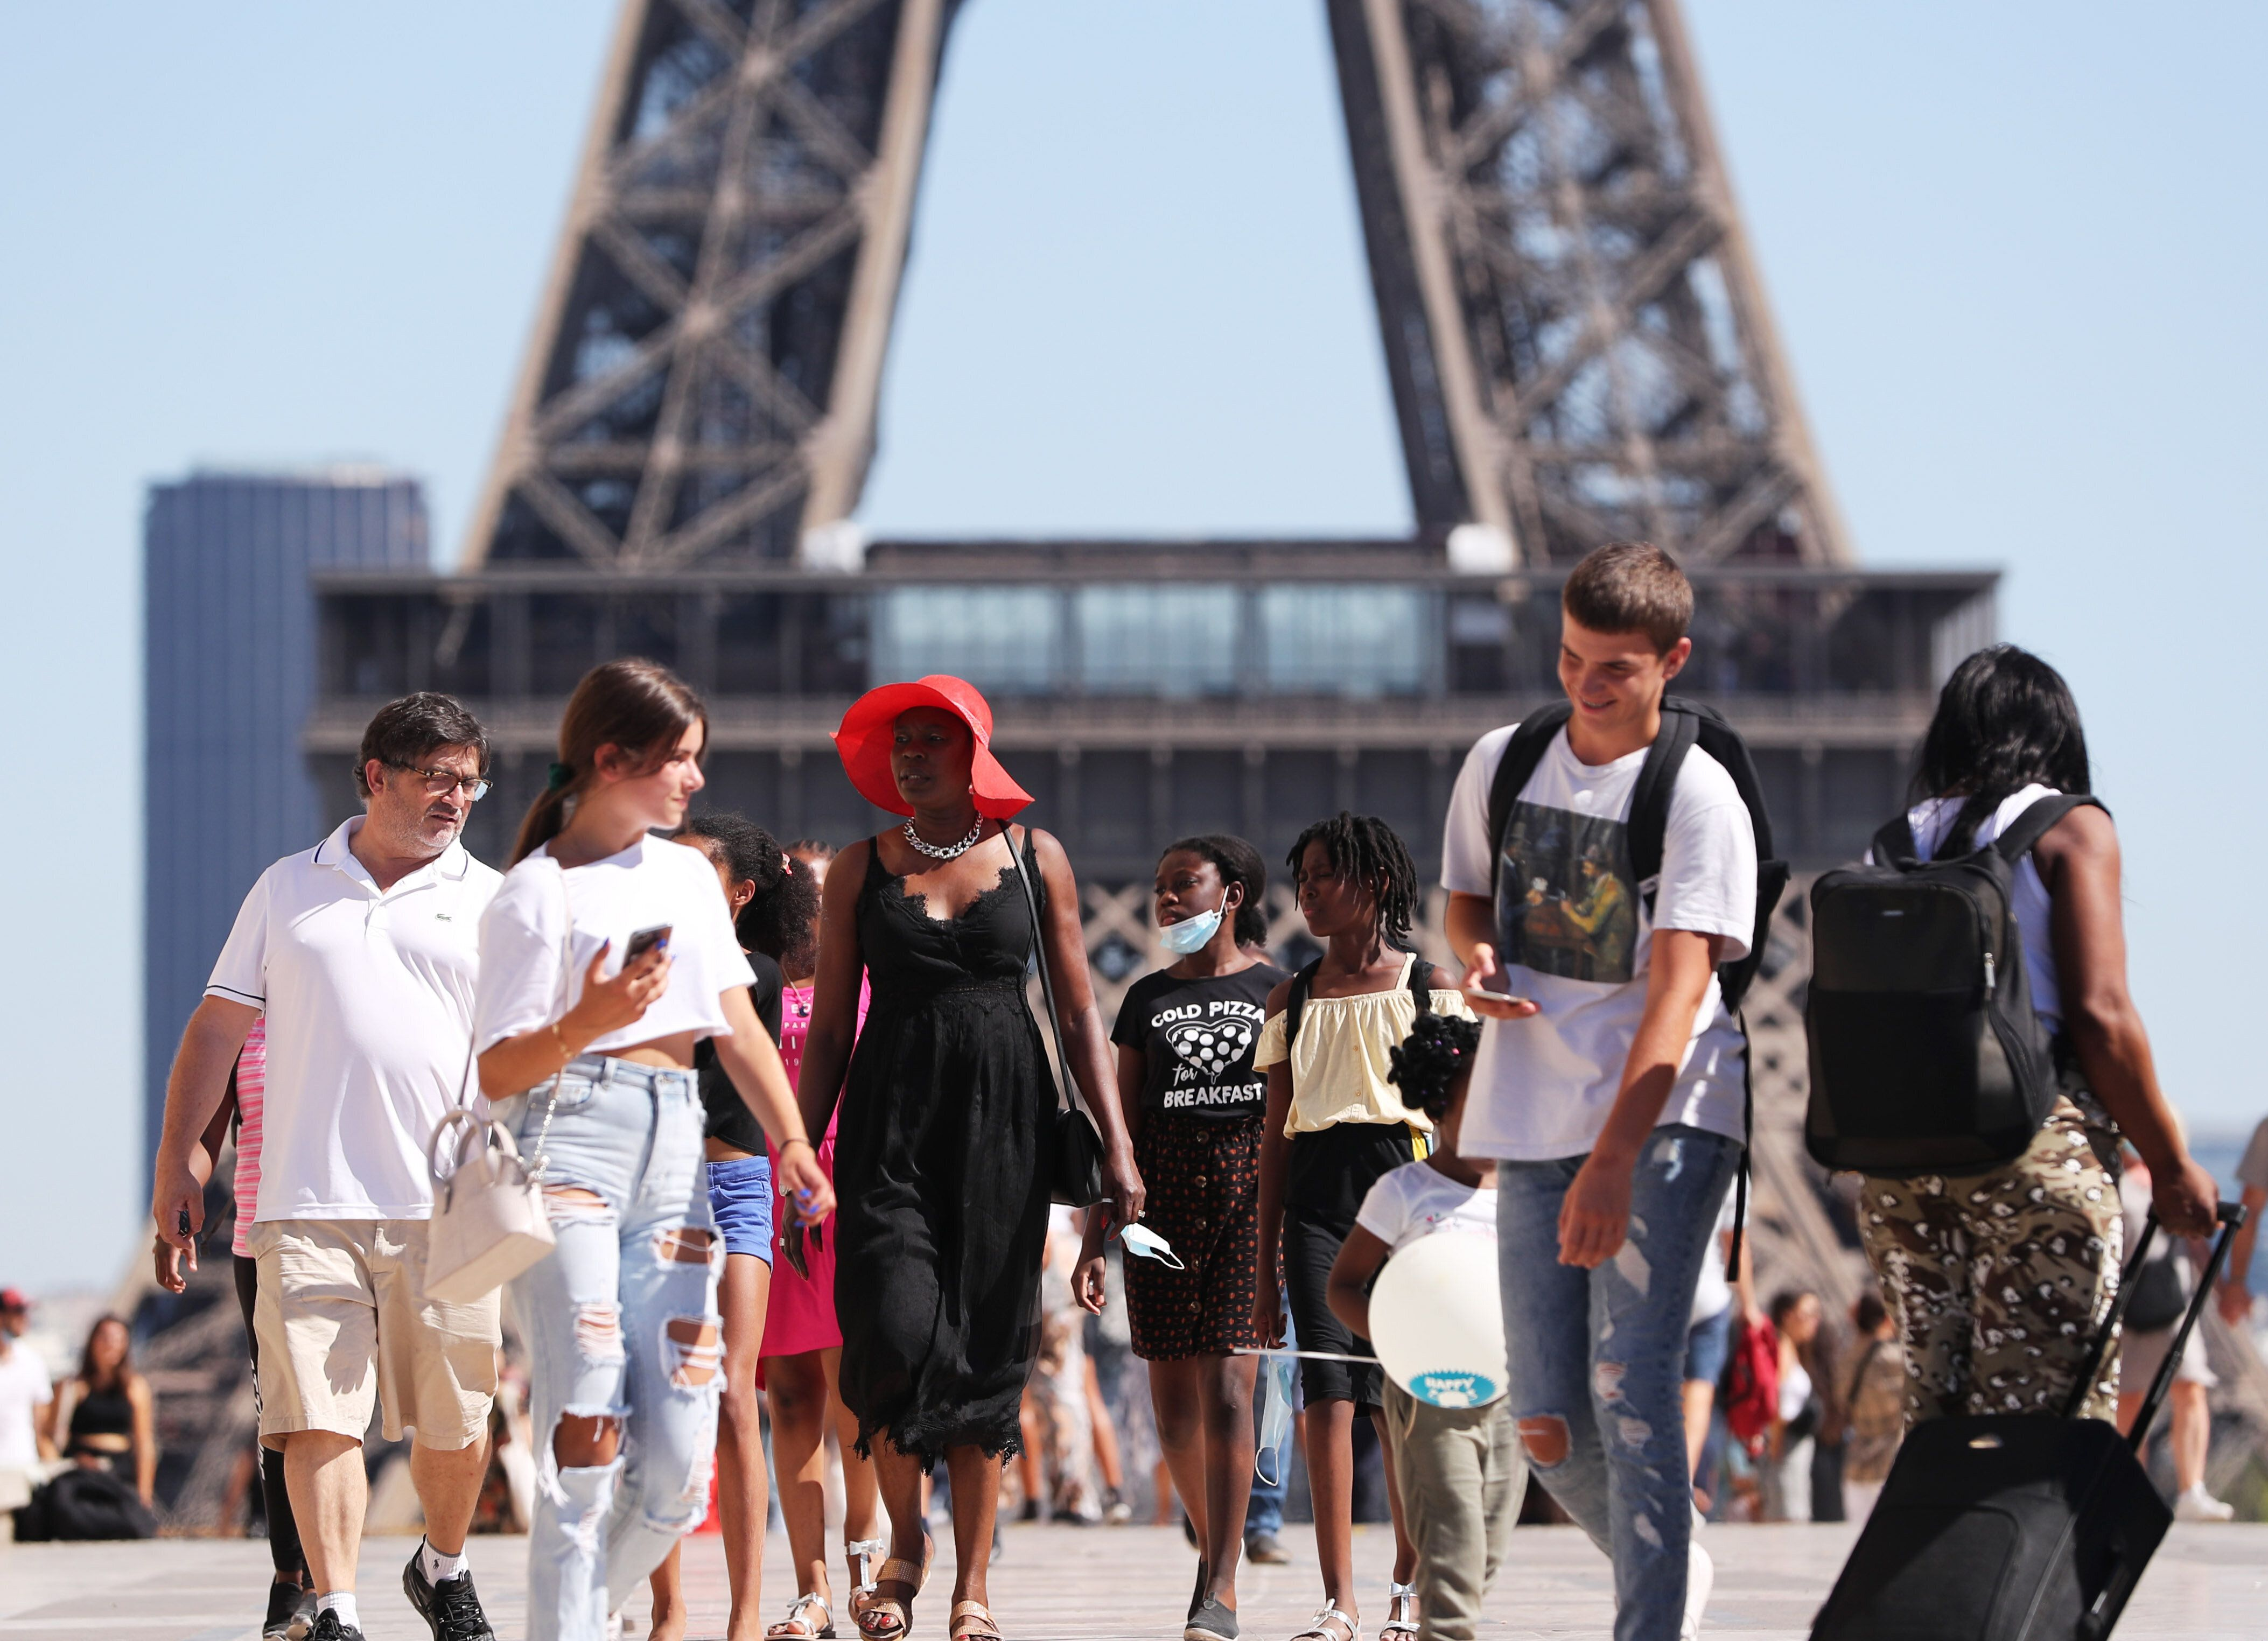 People enjoy the summer weather in Paris, France, on August 7.